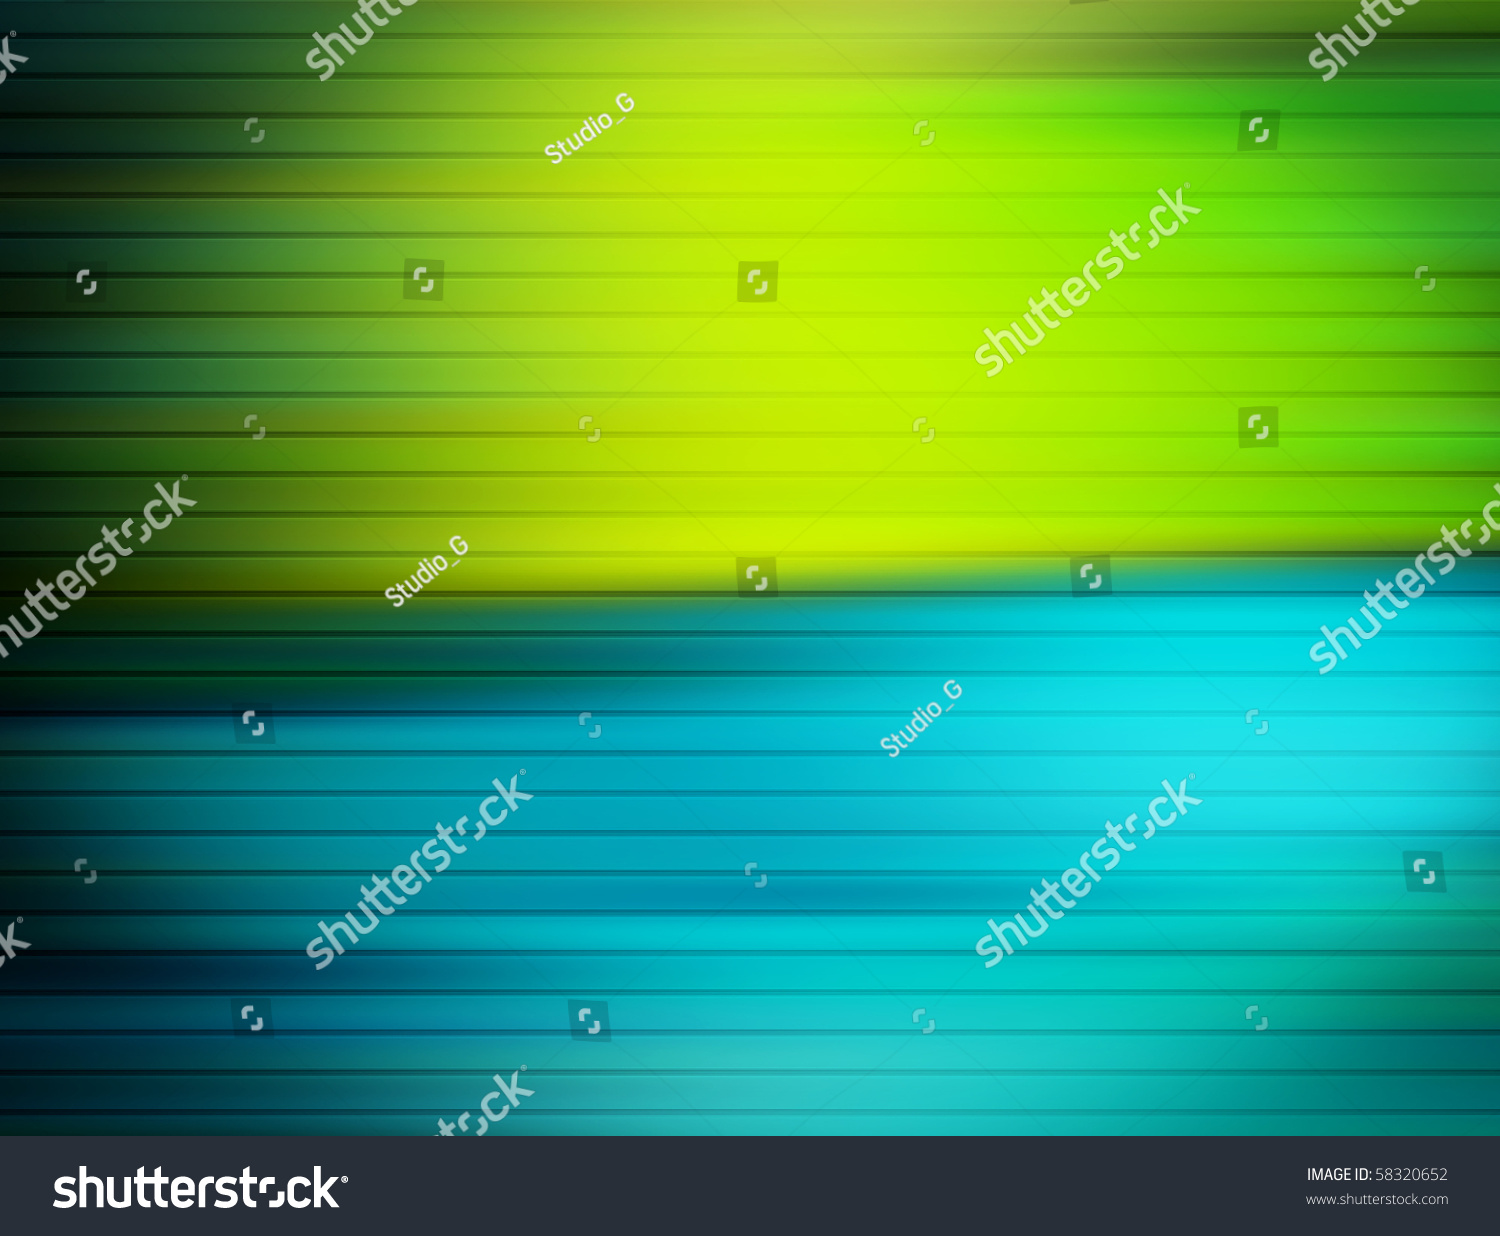 Blue green contrast background colors illustration stock - Colour contrast with sea green ...